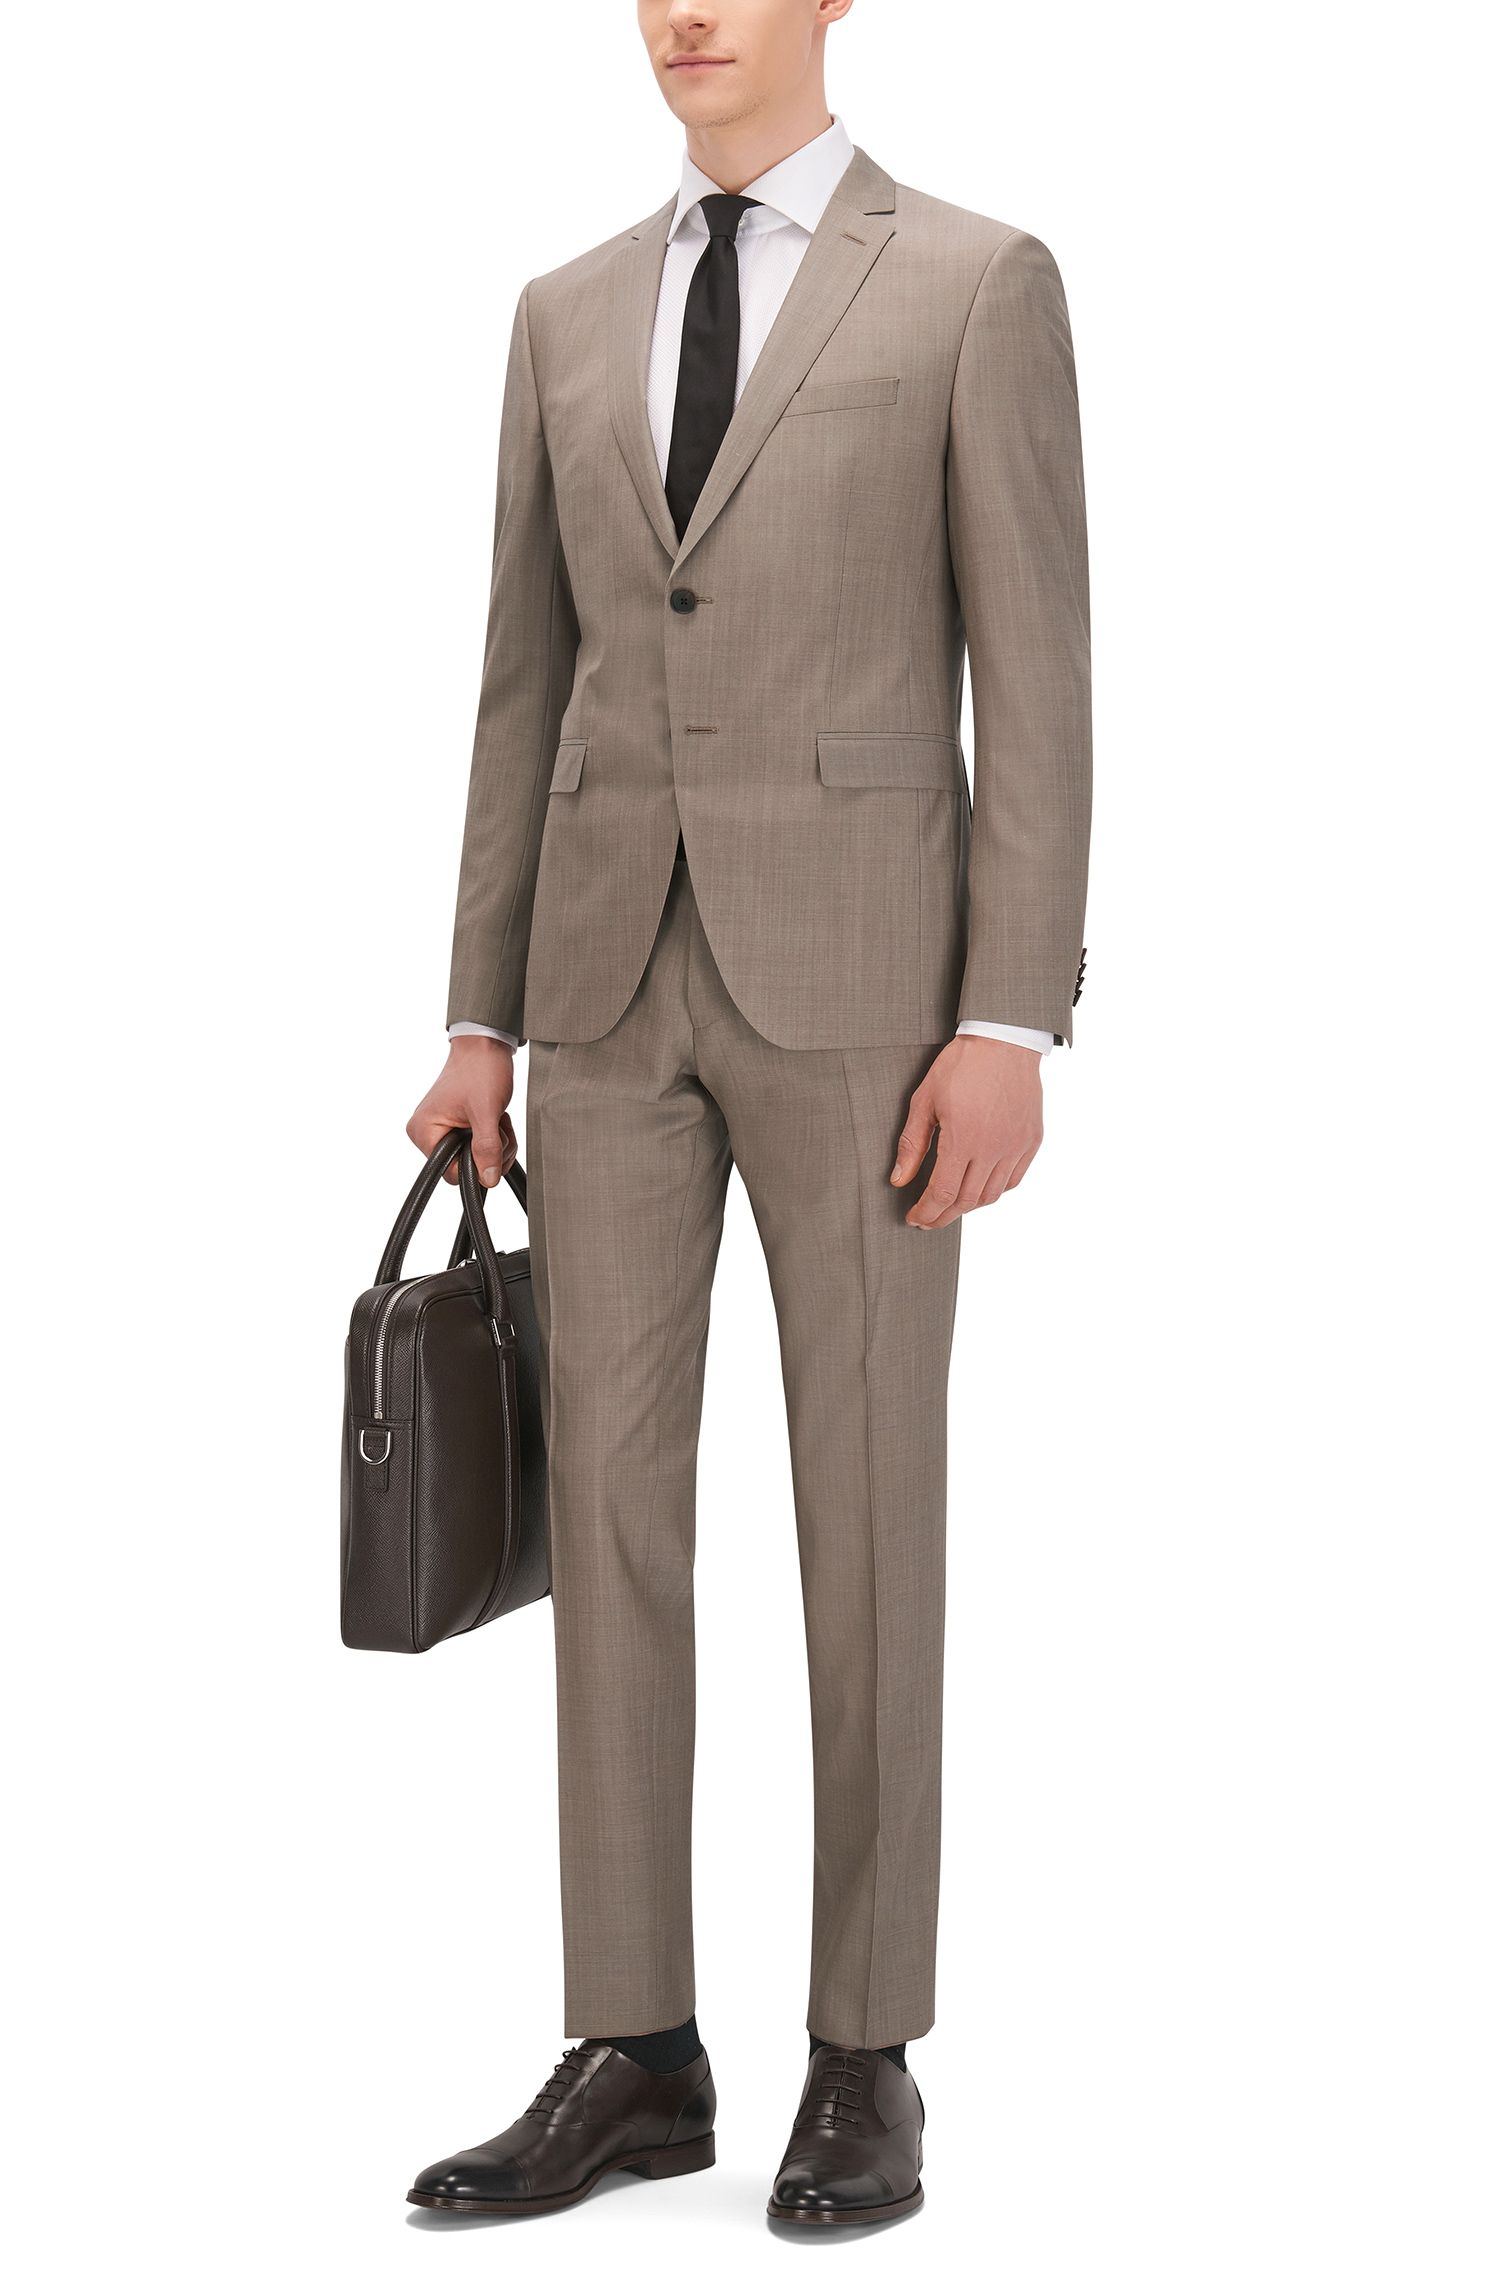 Heathered Virgin Wool Suit, Extra Slim Fit | Reymond/Wenton